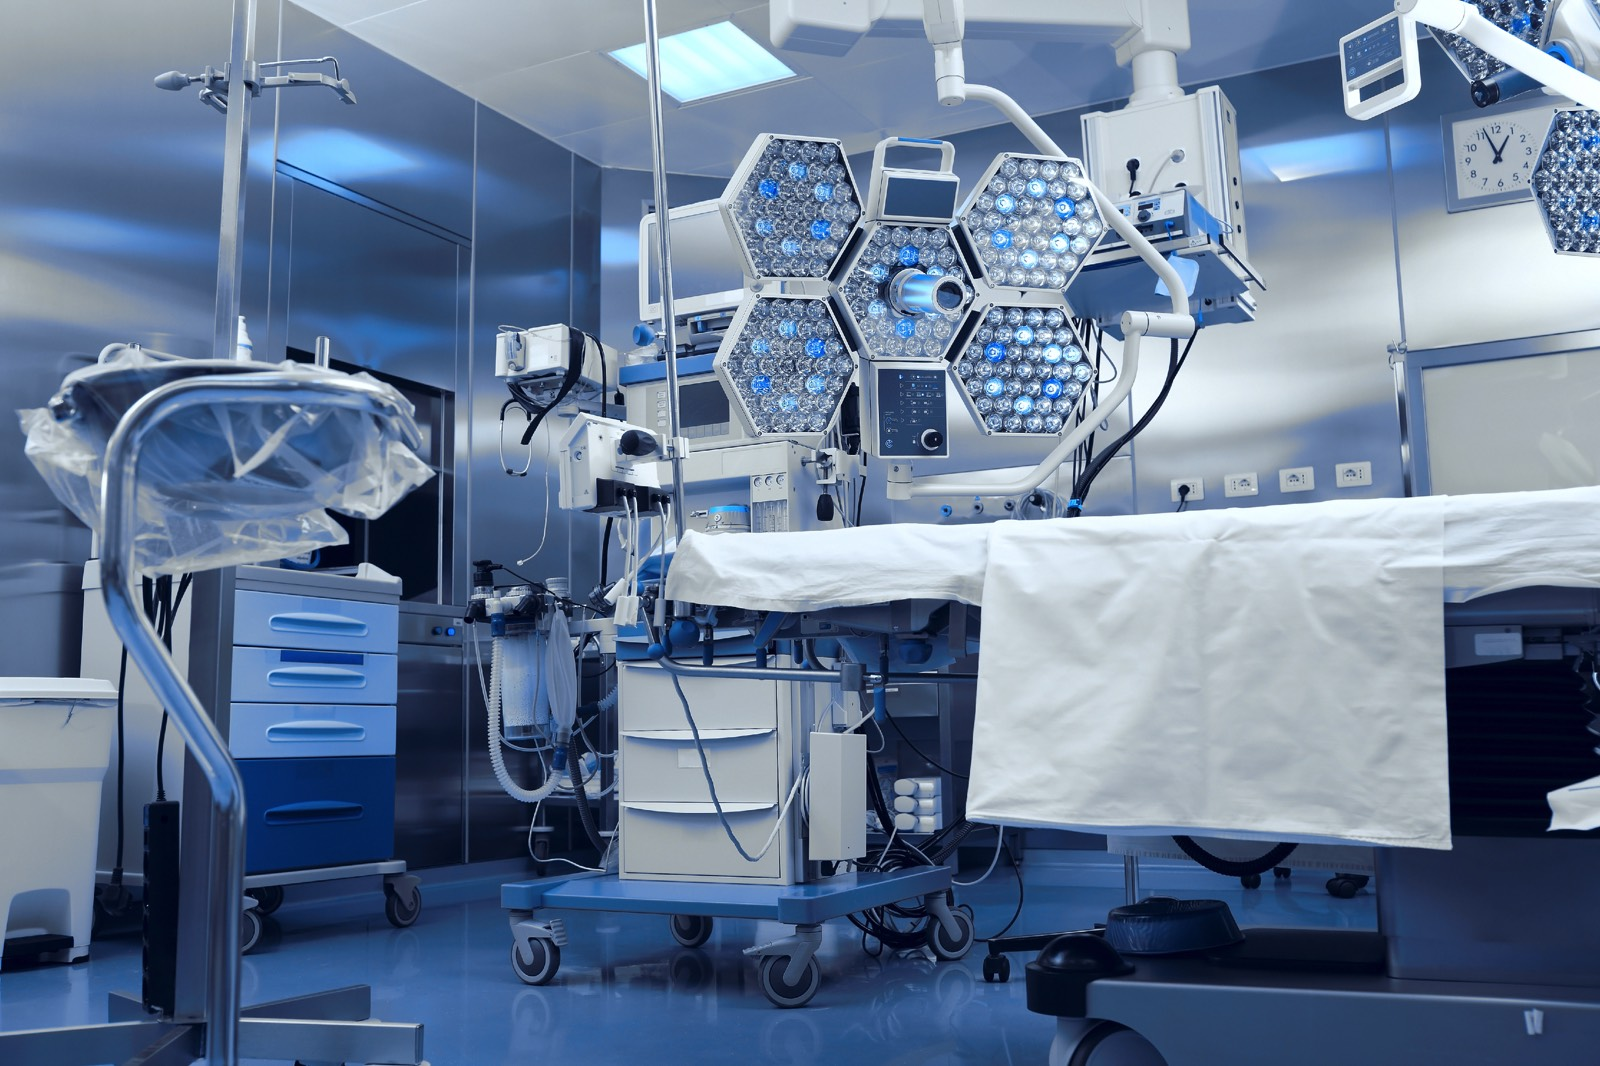 Technological advanced equipment in clinical operating room